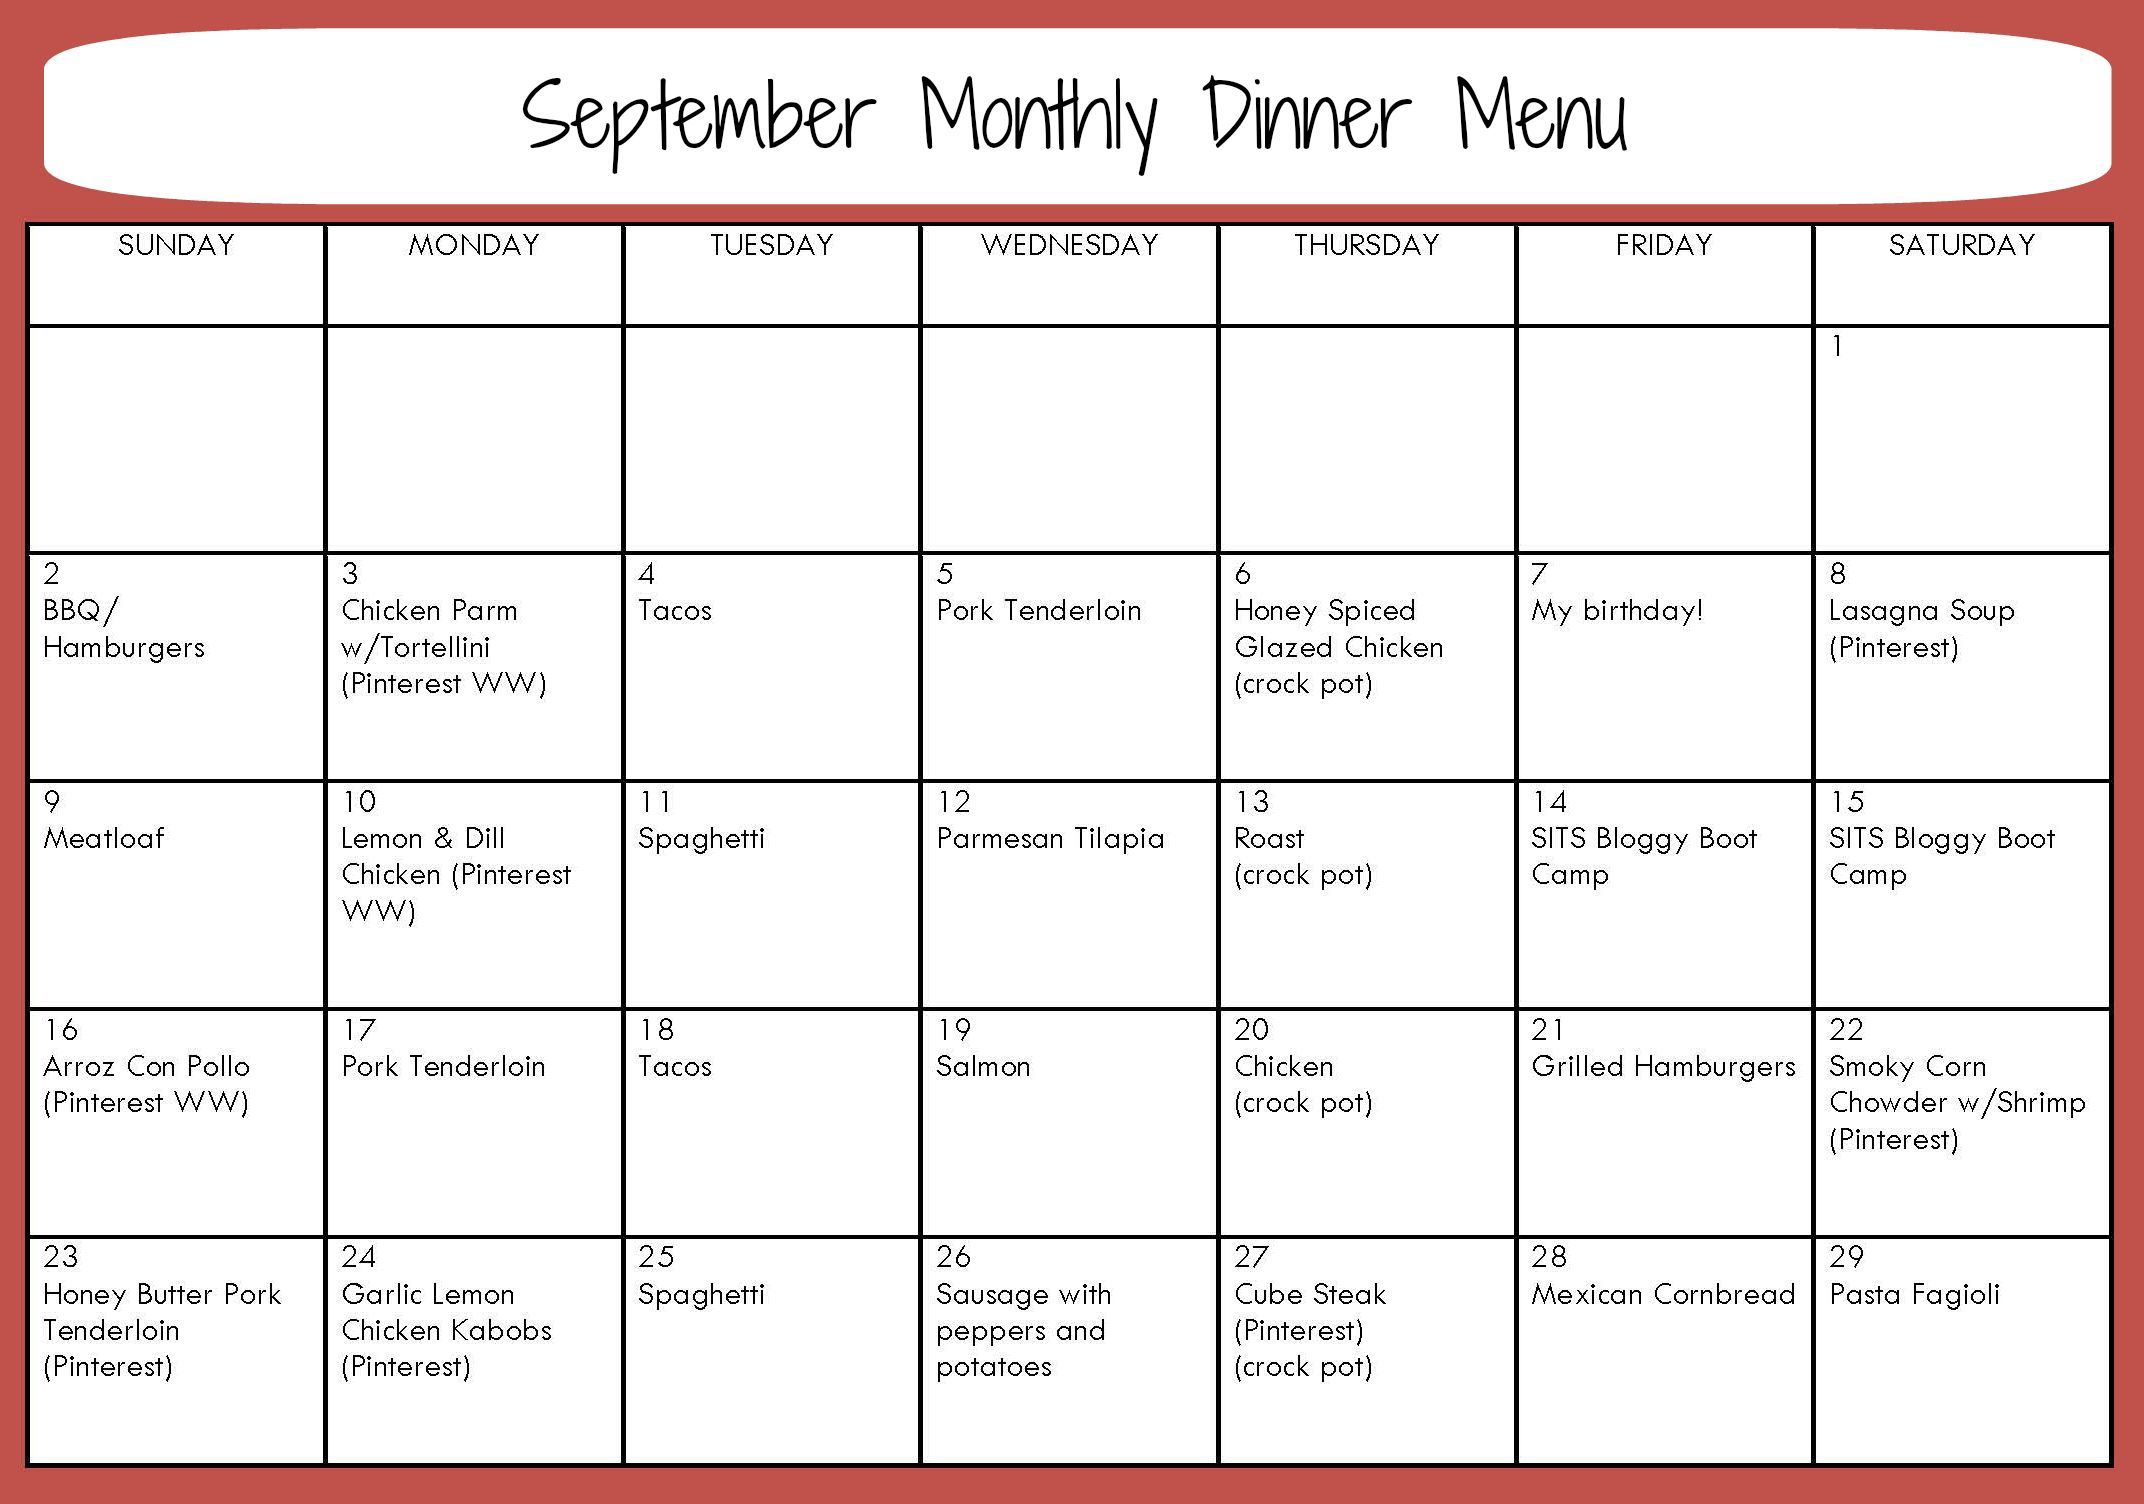 Monthly Dinner Menu For September With Links To Recipes And It Is